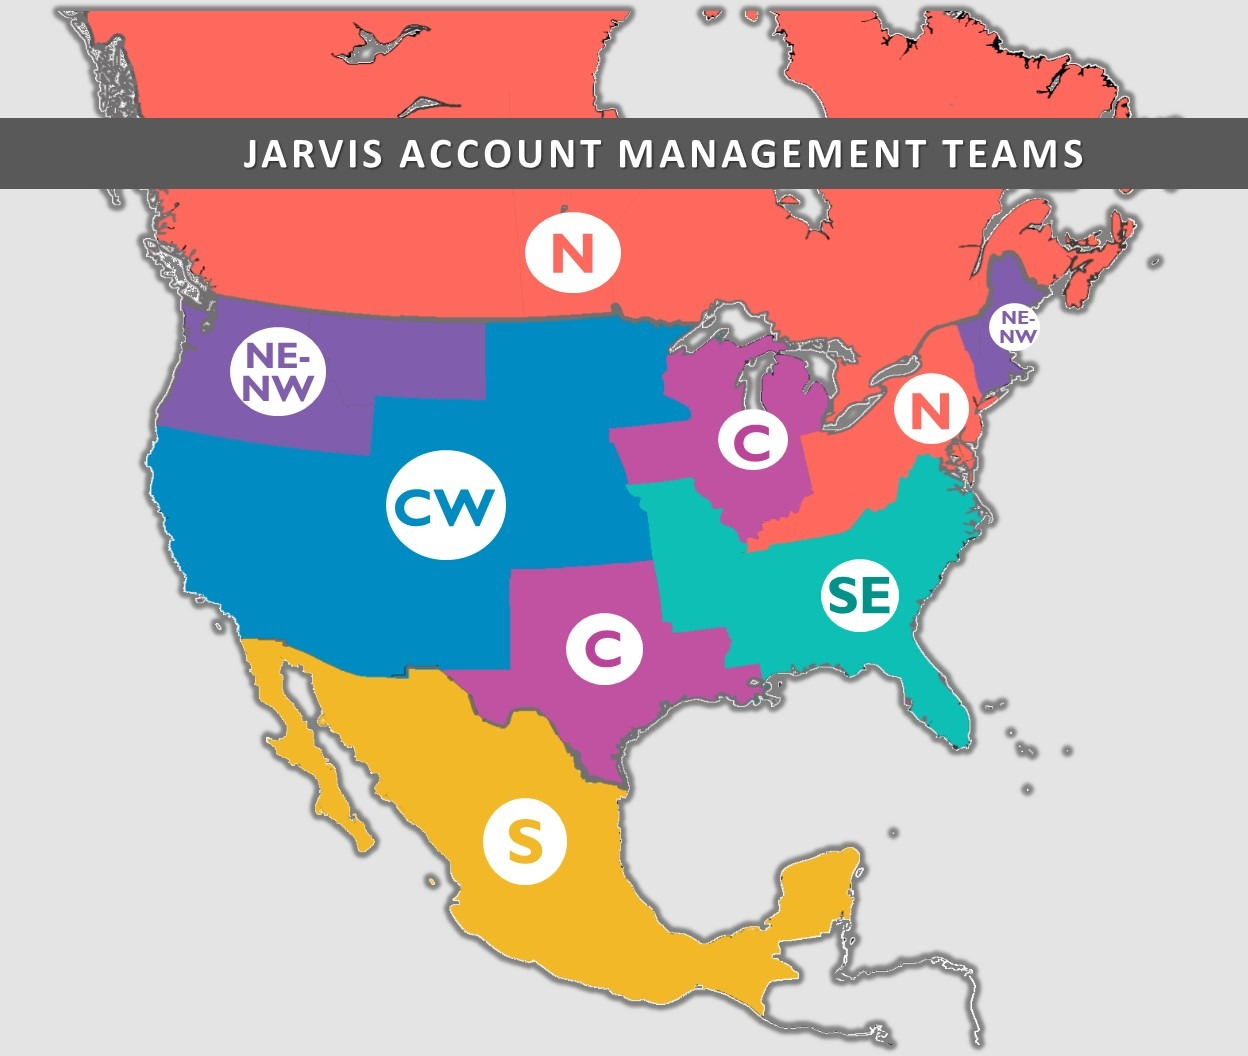 jarvis account map